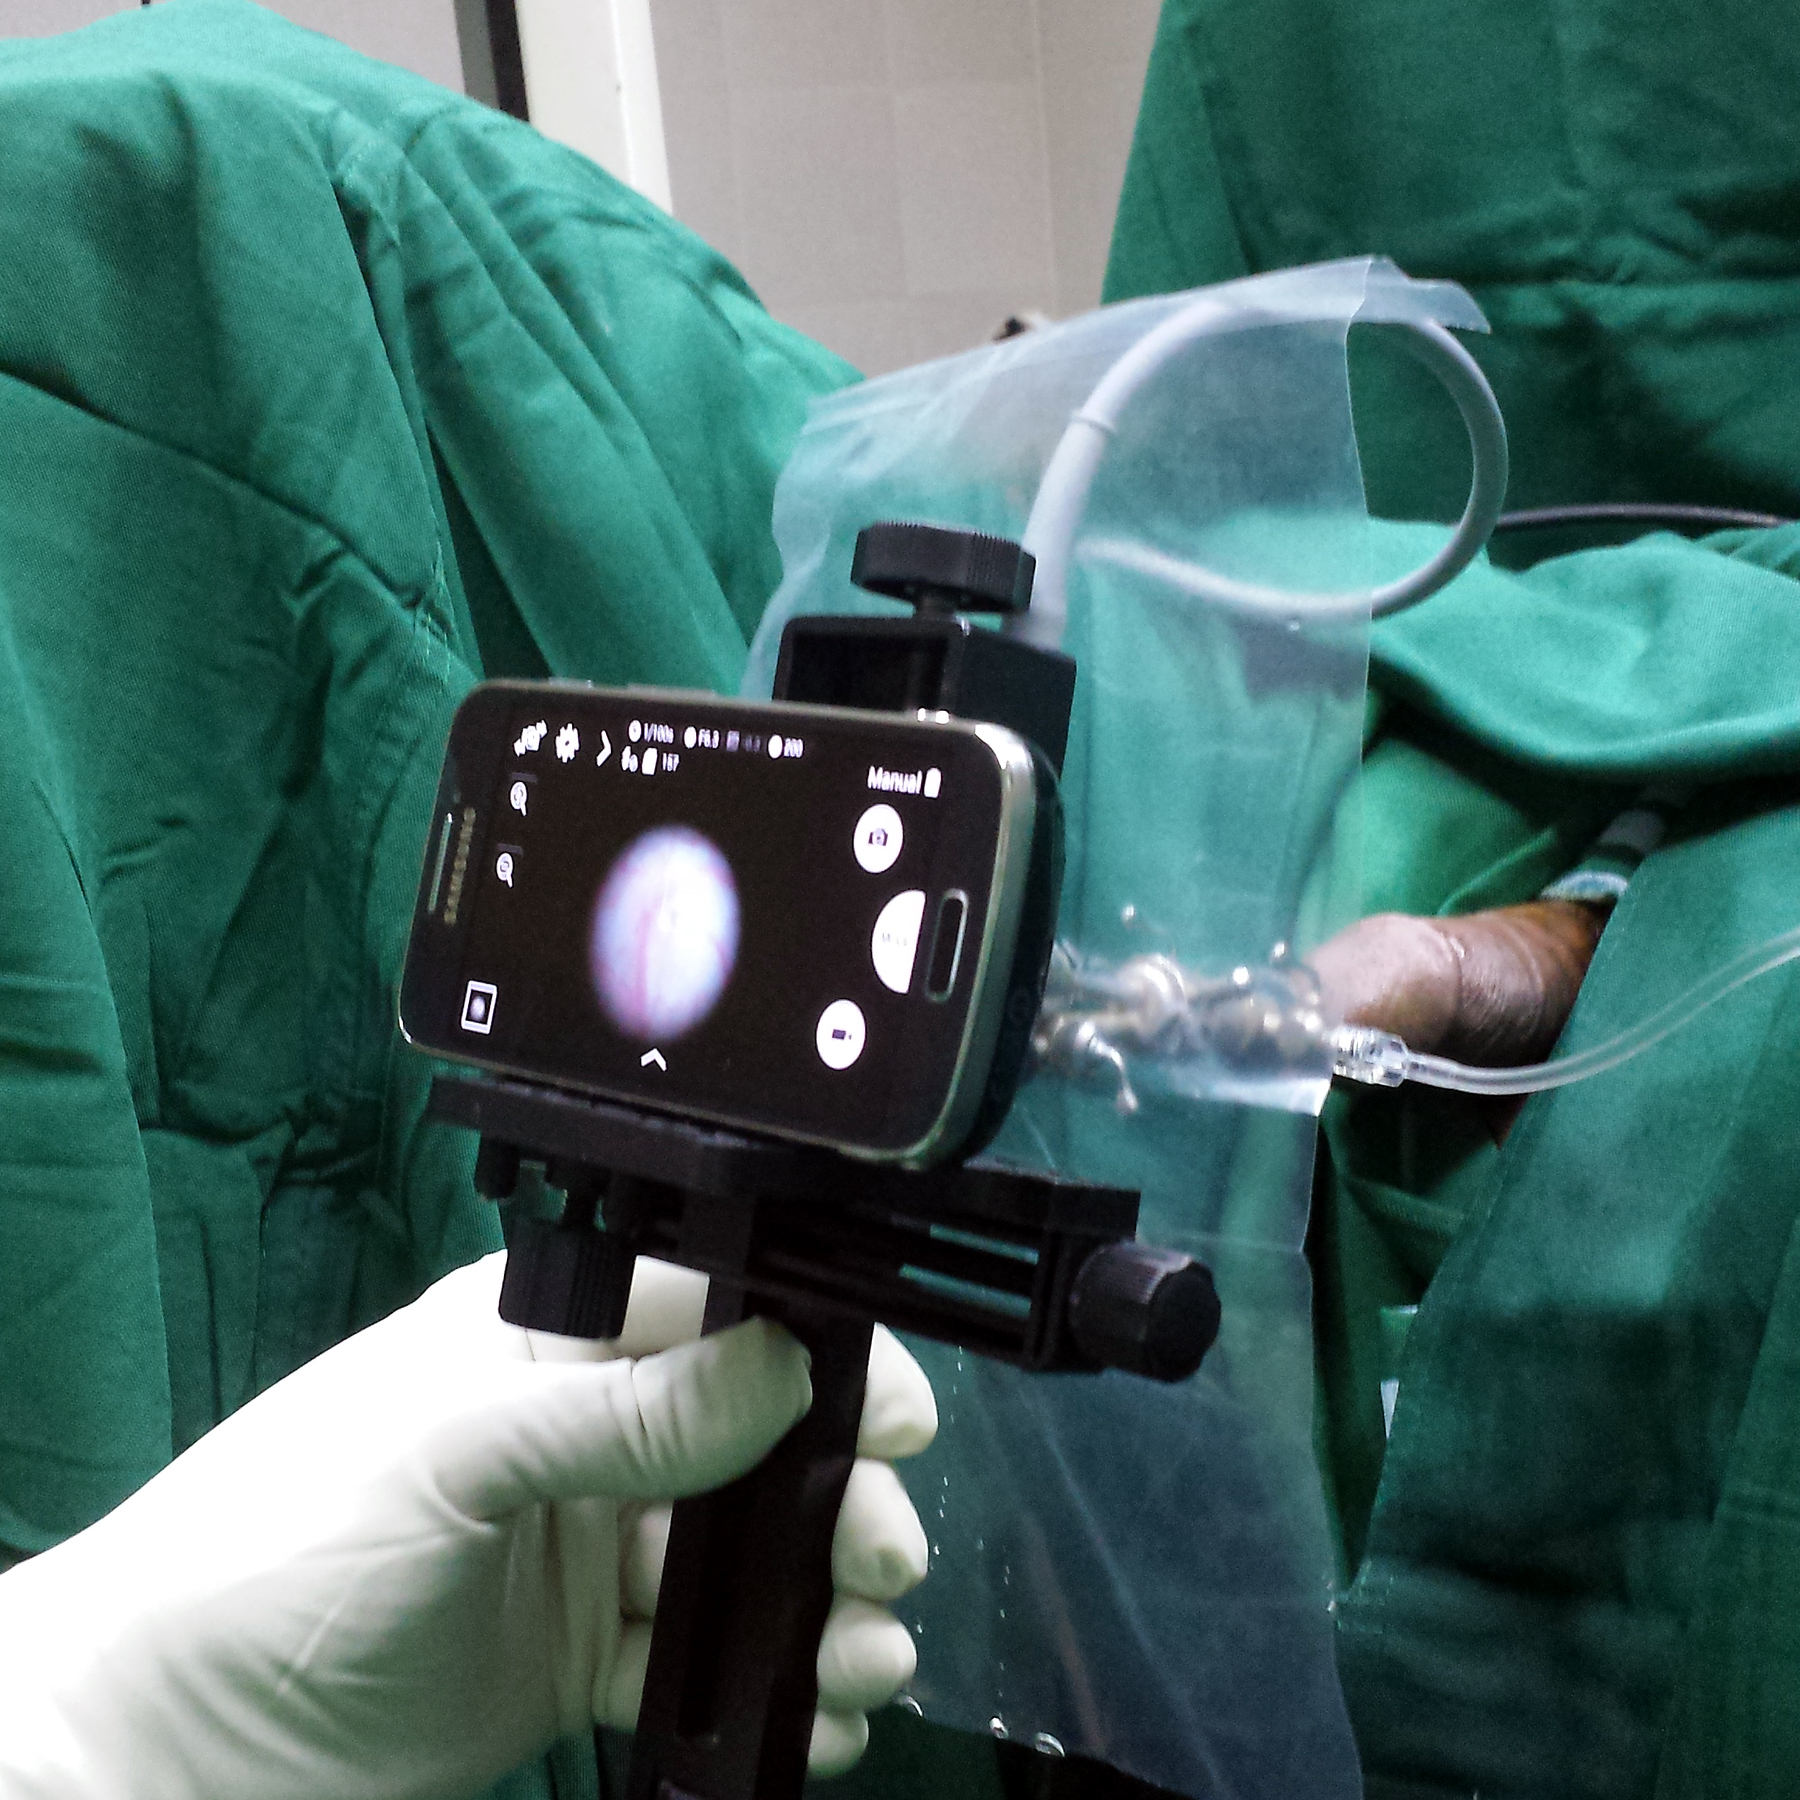 Video Cystourethroscopy using an Android Smartphone and a rigid cystourethroscope